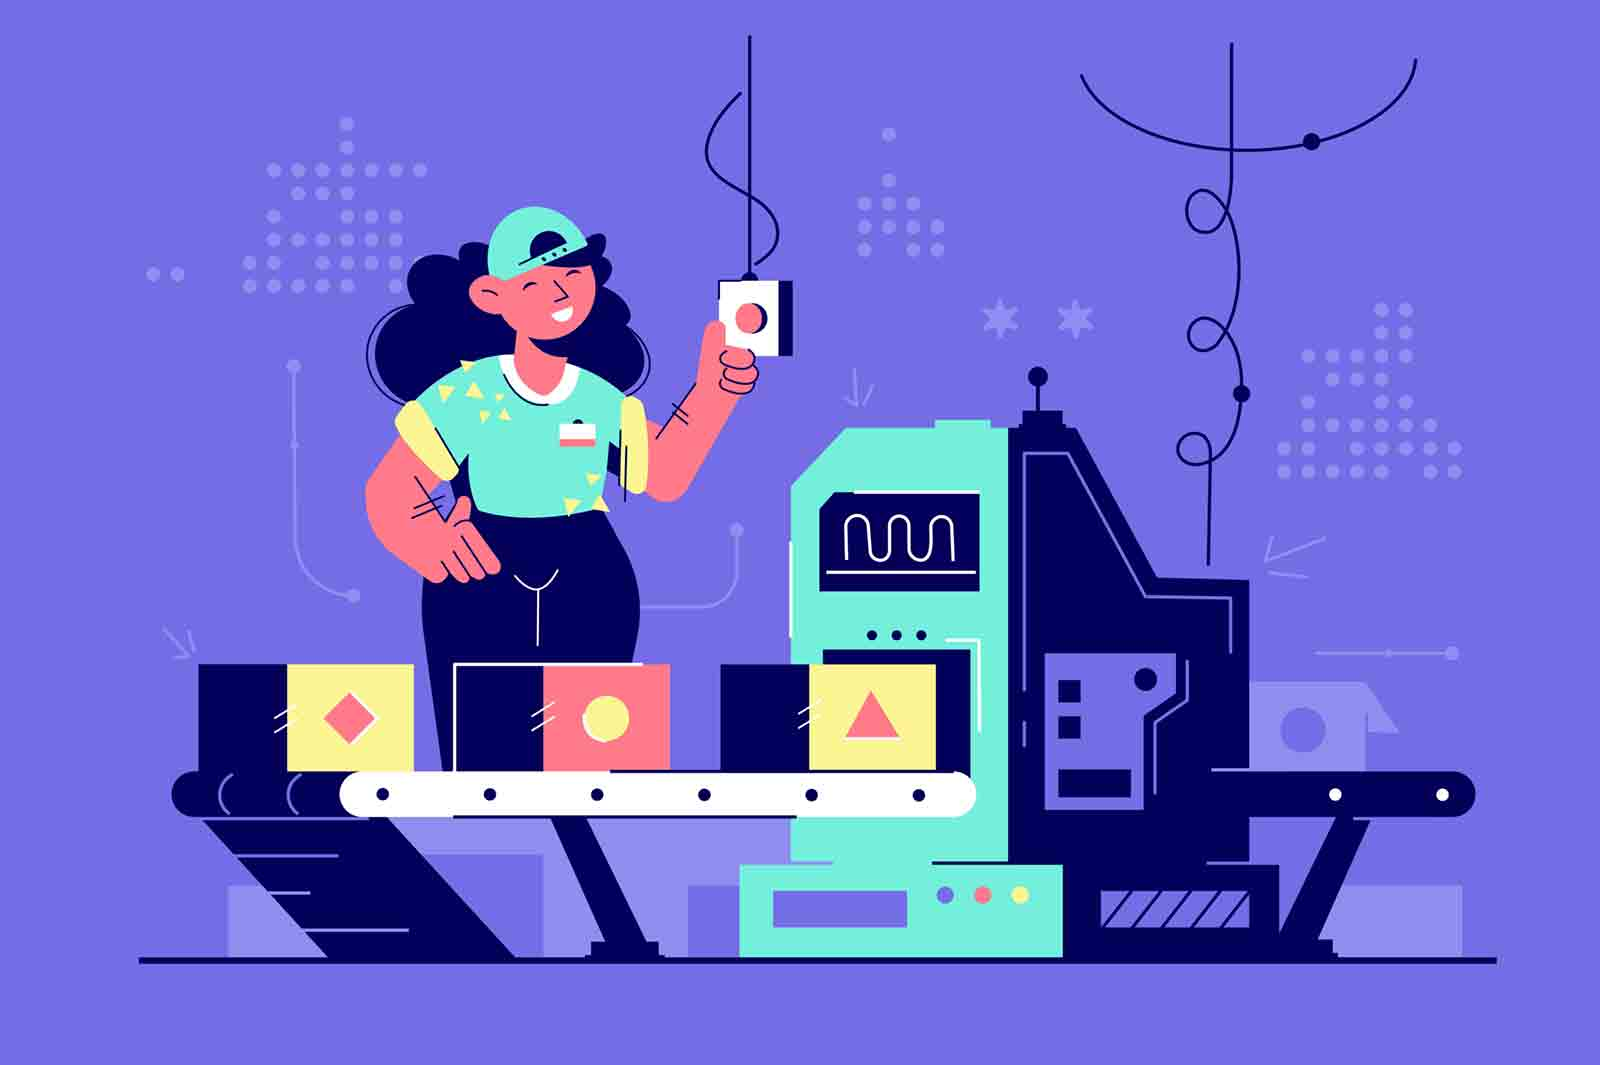 Happy woman at work controlling automatic production. Concept smiling businesswoman employee character with modern technology and classic interface. Vector illustration.